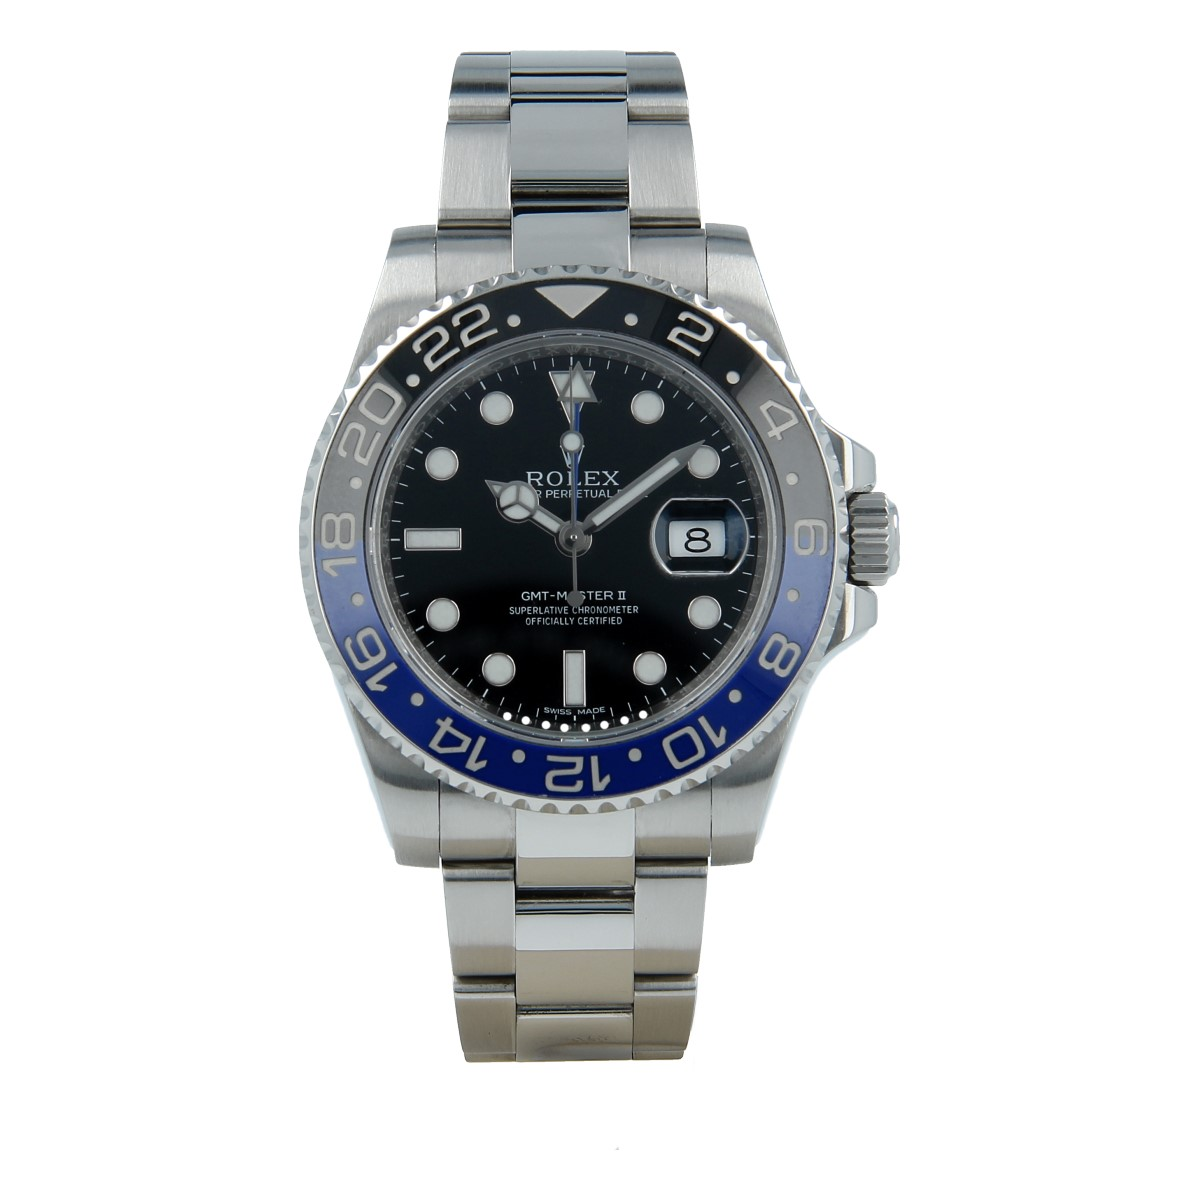 Rolex GMT Master II 116710 BLNR *Batman* | Buy second-hand Rolex watch